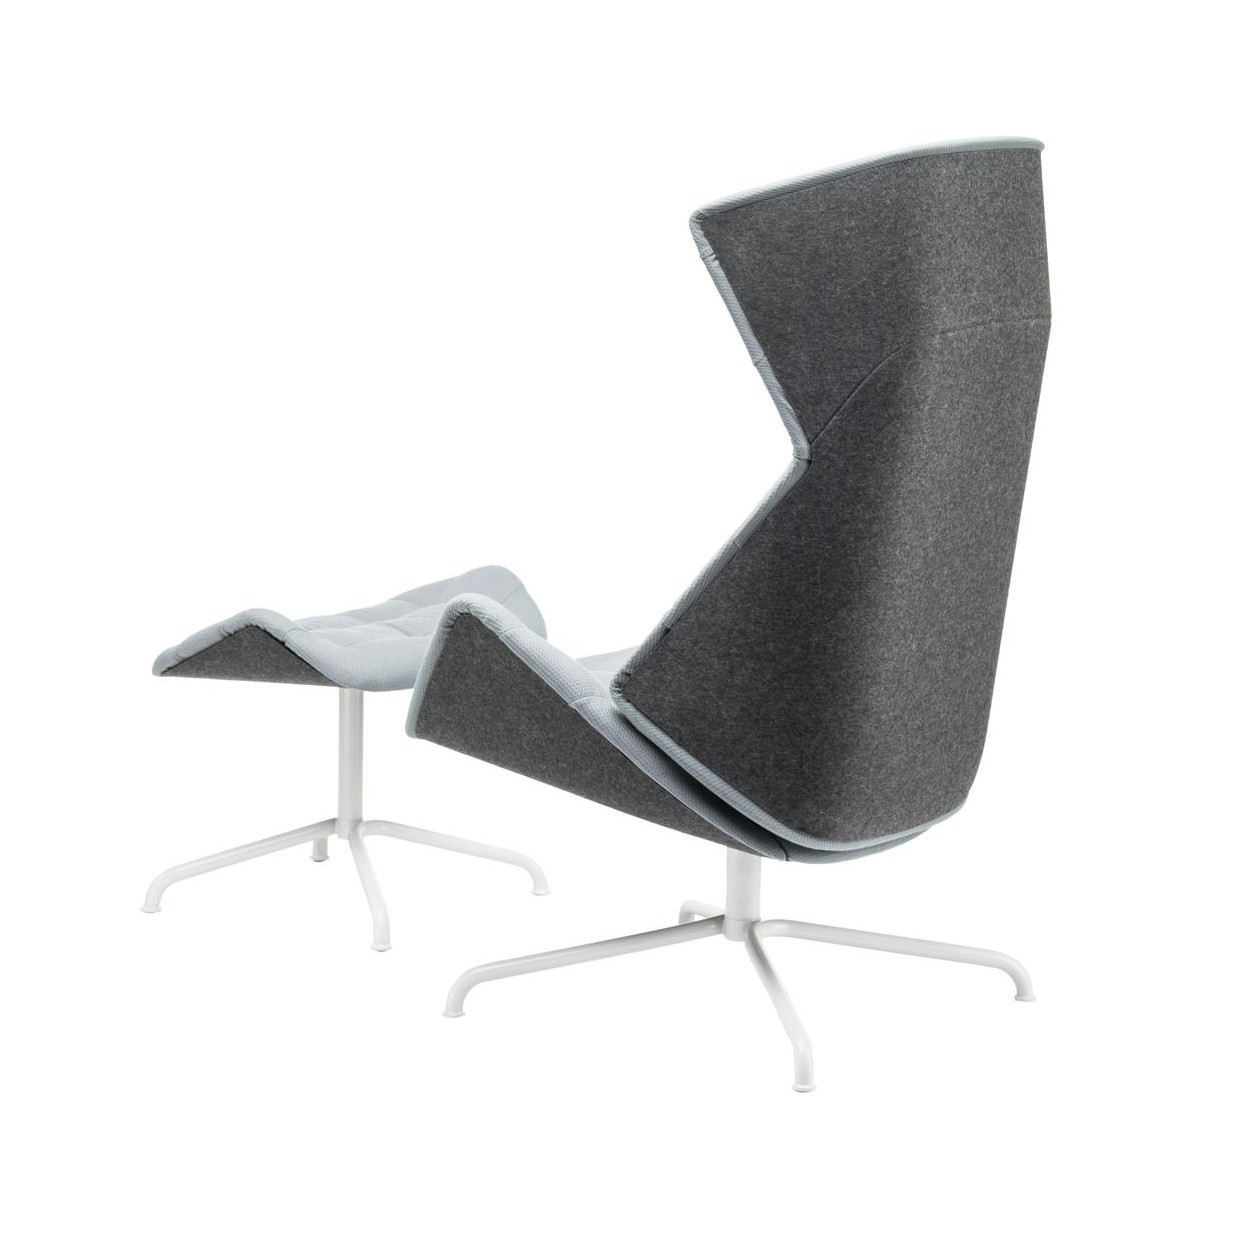 Lounge-sessel 808 Thonet Lounge Ottomane 808